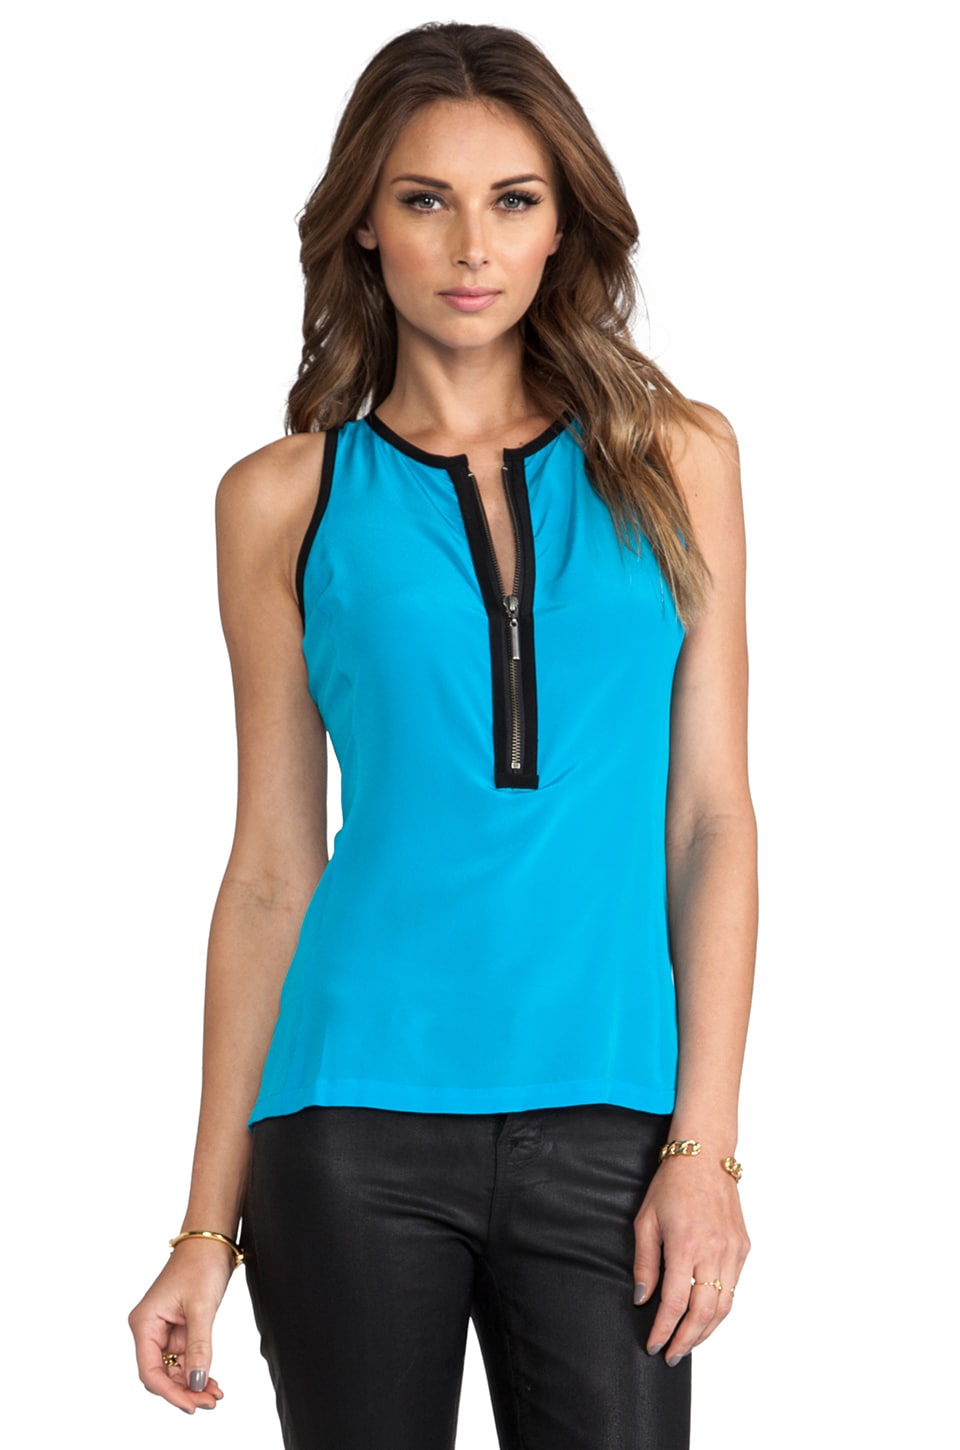 Nanette Lepore Visionary Top in Cyan